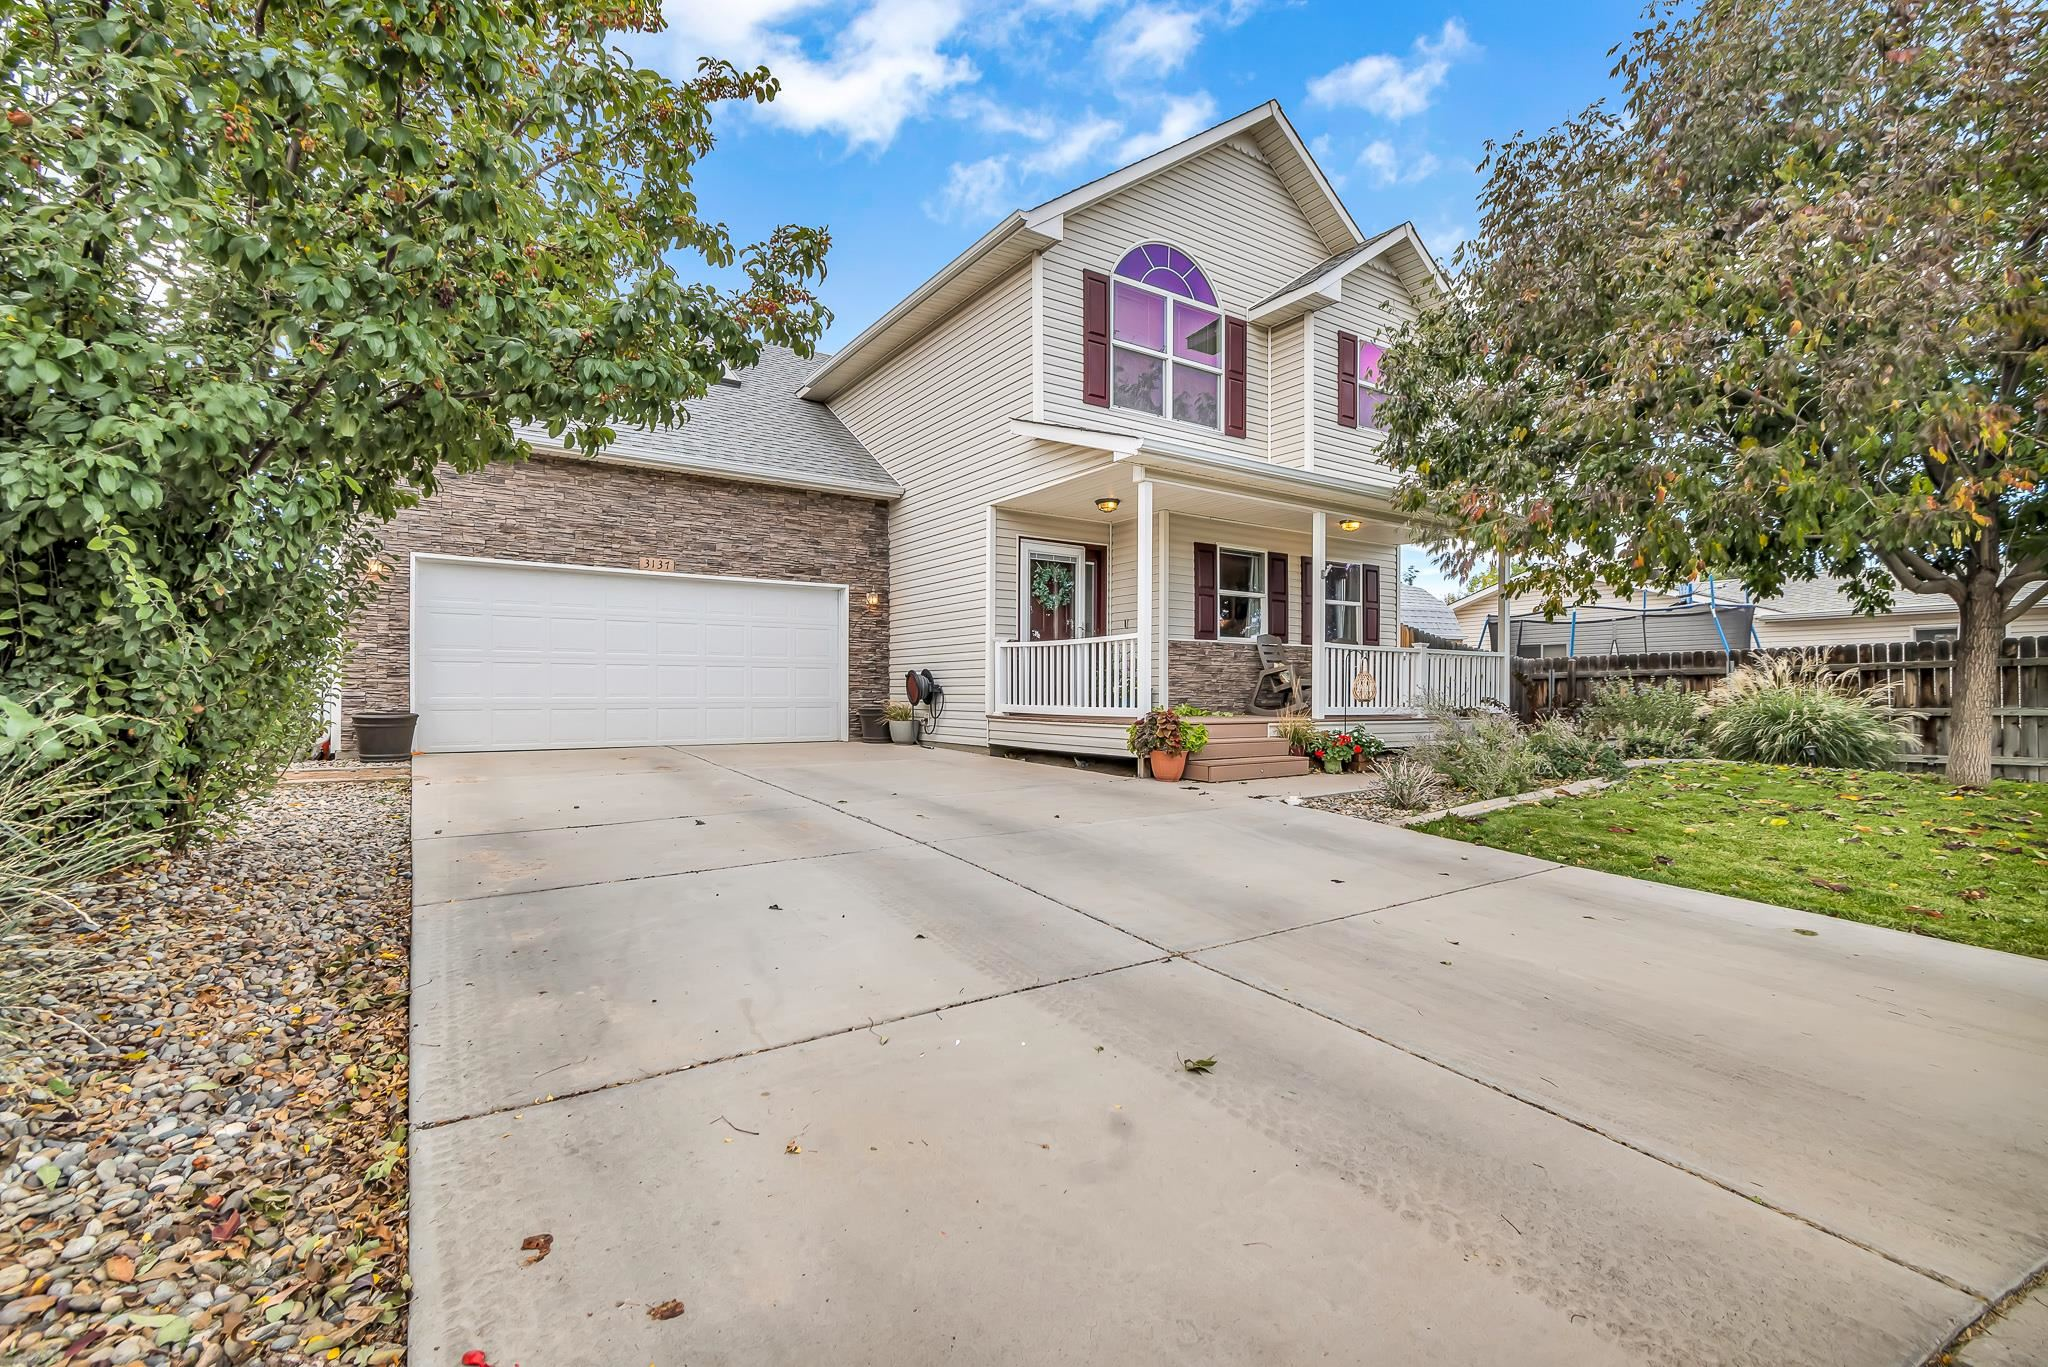 Beautifully maintained home in a lovely cul-de-sac. Two living areas - the bonus room is HUGE, with endless possibilities. High end upgrades & gorgeous curb appeal. Central heating & cooling with a nest thermostat & tankless hot water heater. Security system equipment active - ready for a new subscriber. Don't miss this ne - it's a beauty!